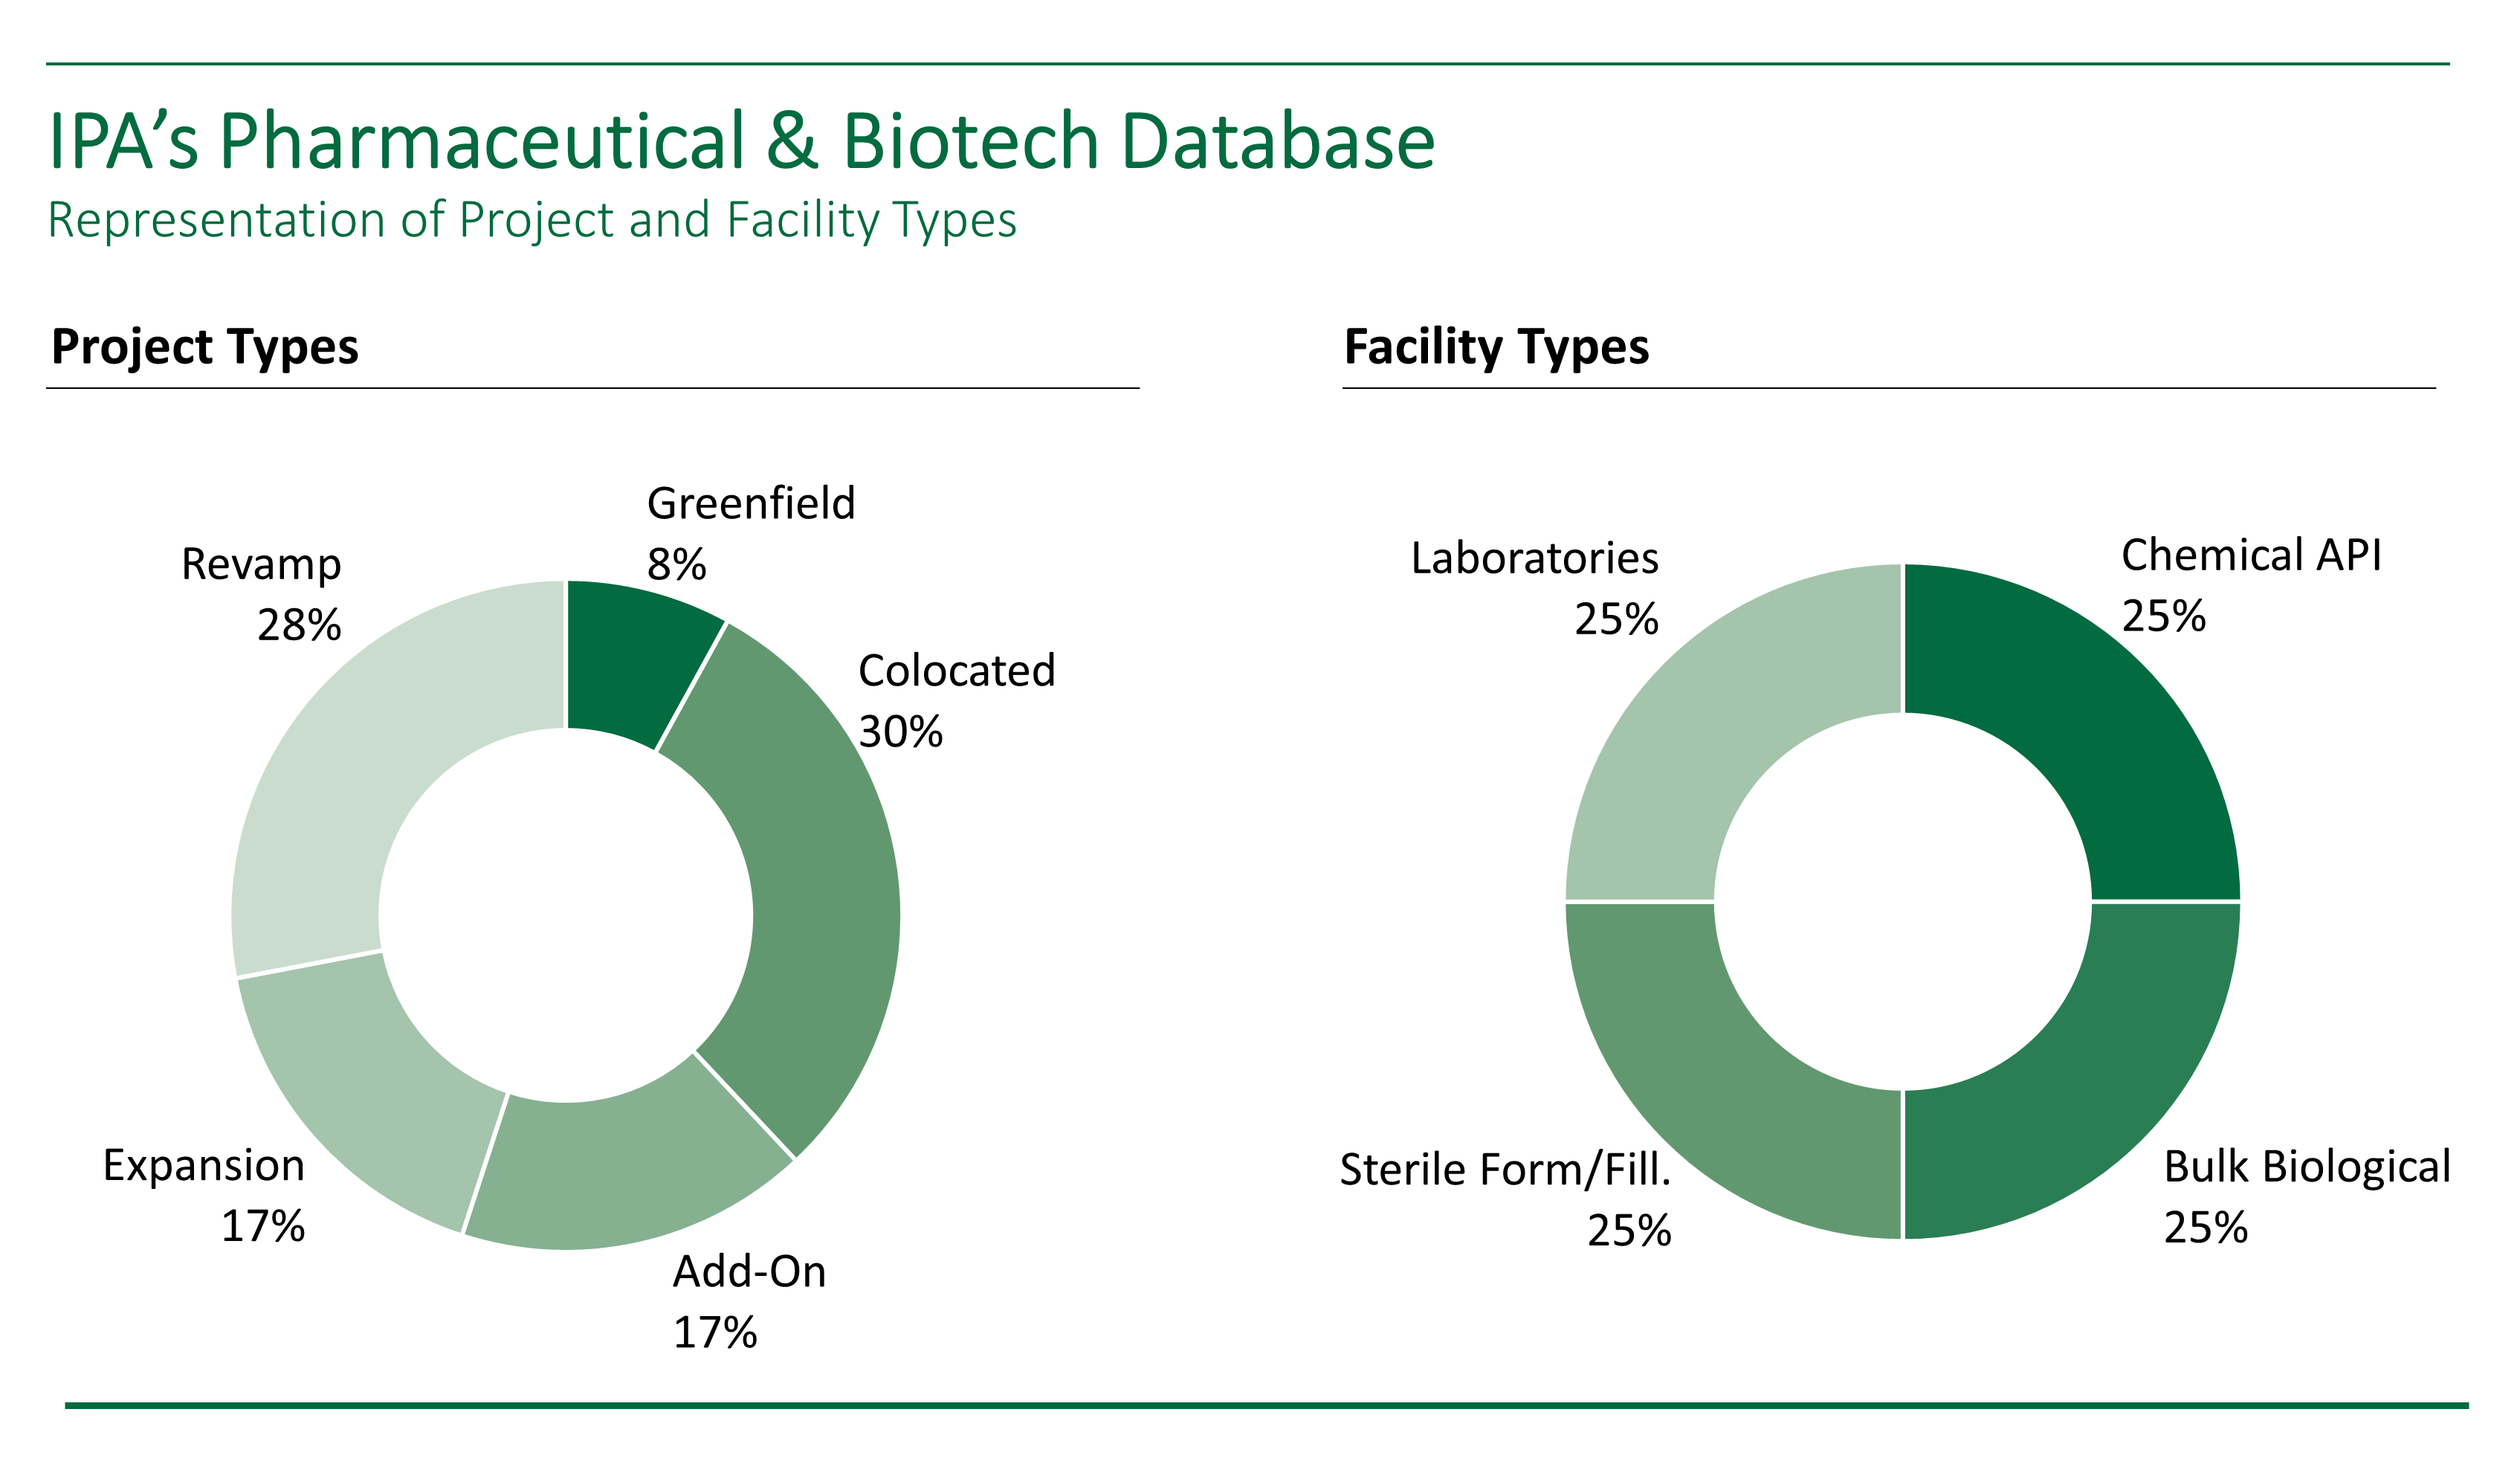 Two donut charts summarizing the types of capital projects and types of facilities contained in IPA's pharmaceutical and biotech database of capital projects.